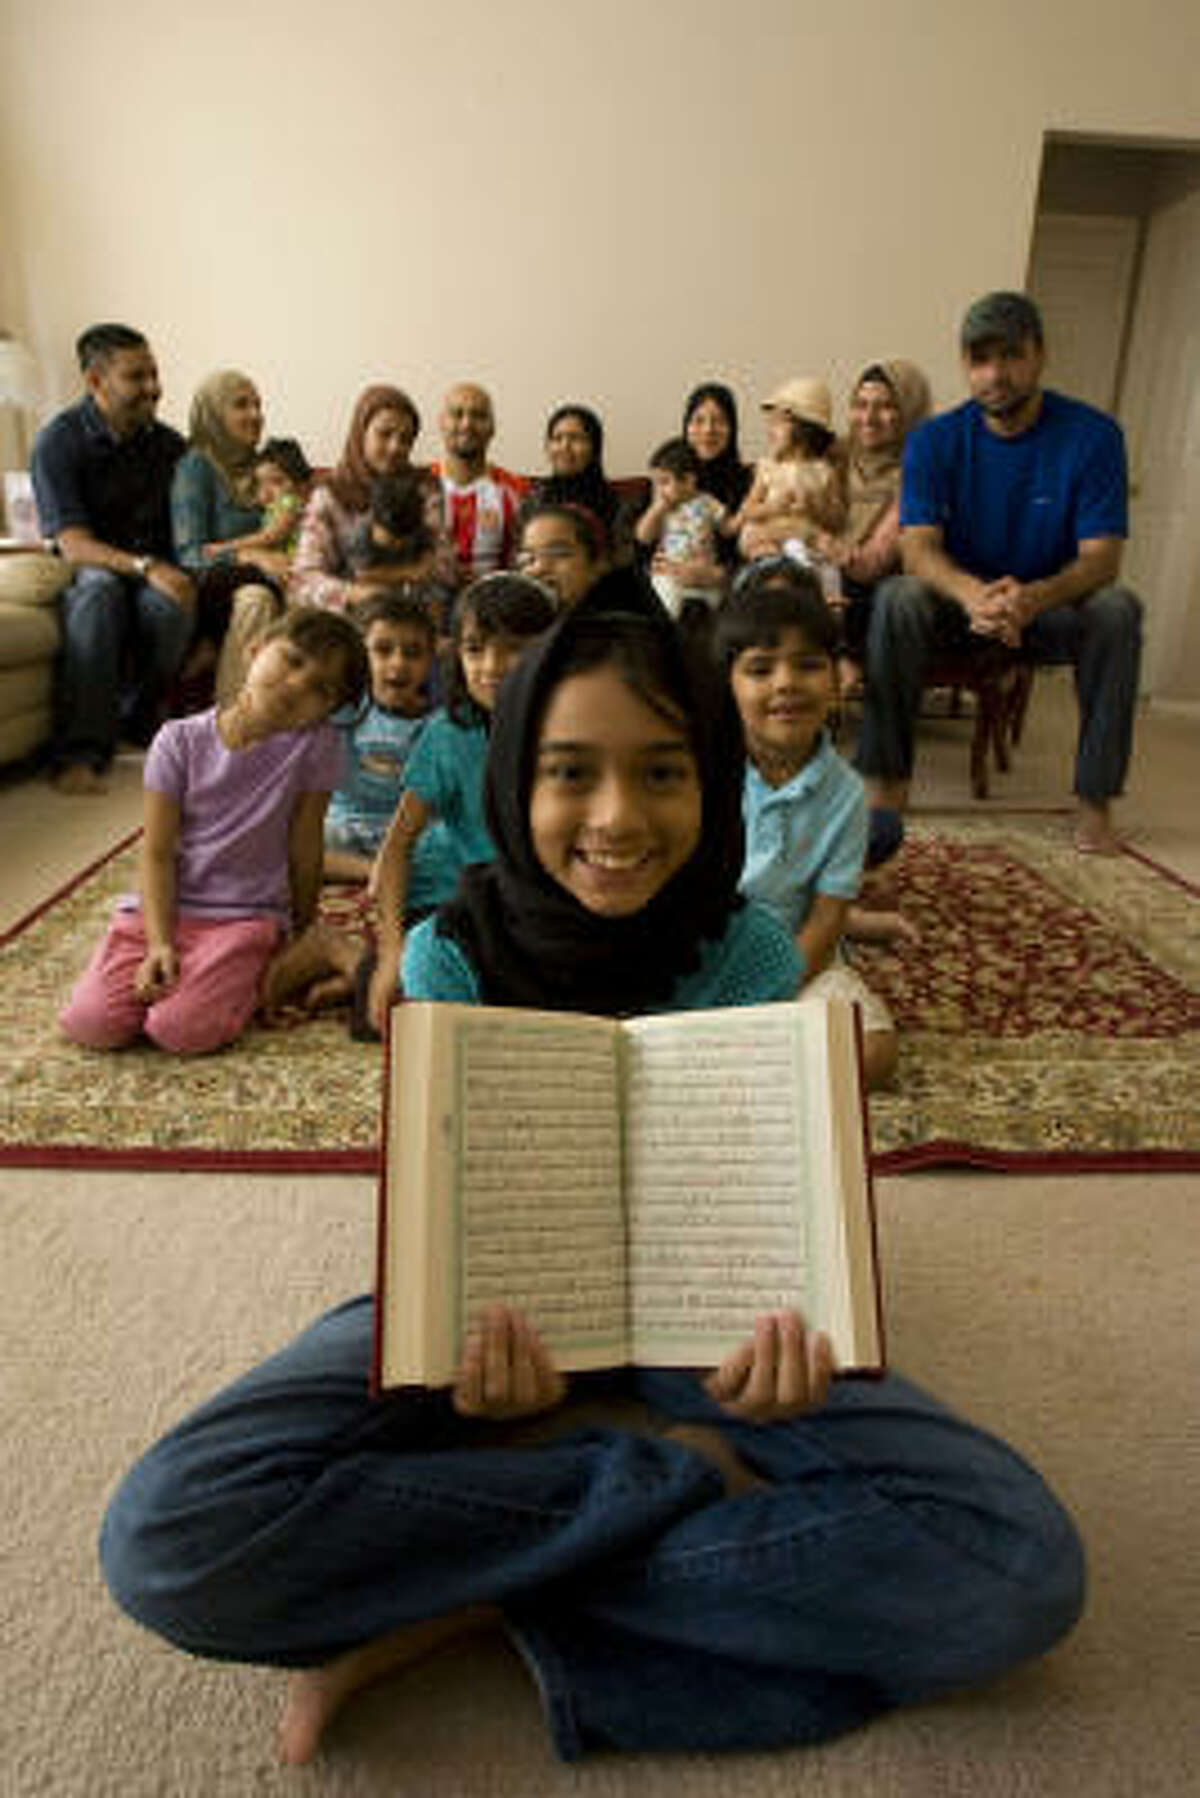 Members of the Jalali family of Sugar Land will fast and pray during Ramadan.